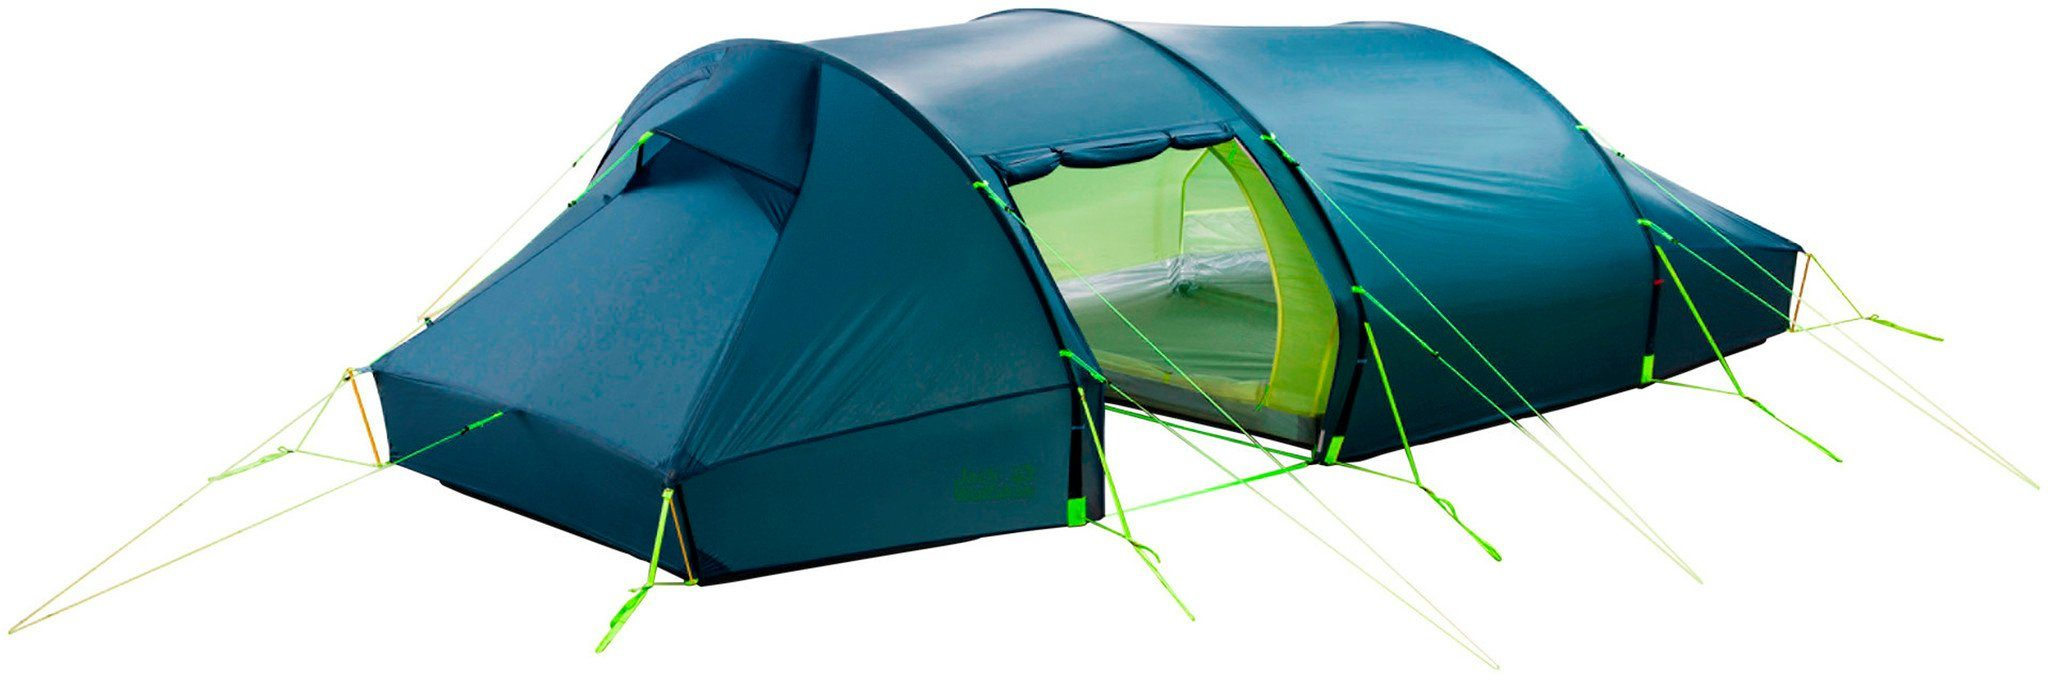 Jack Wolfskin Zelt »Lighthouse III RT Tent«